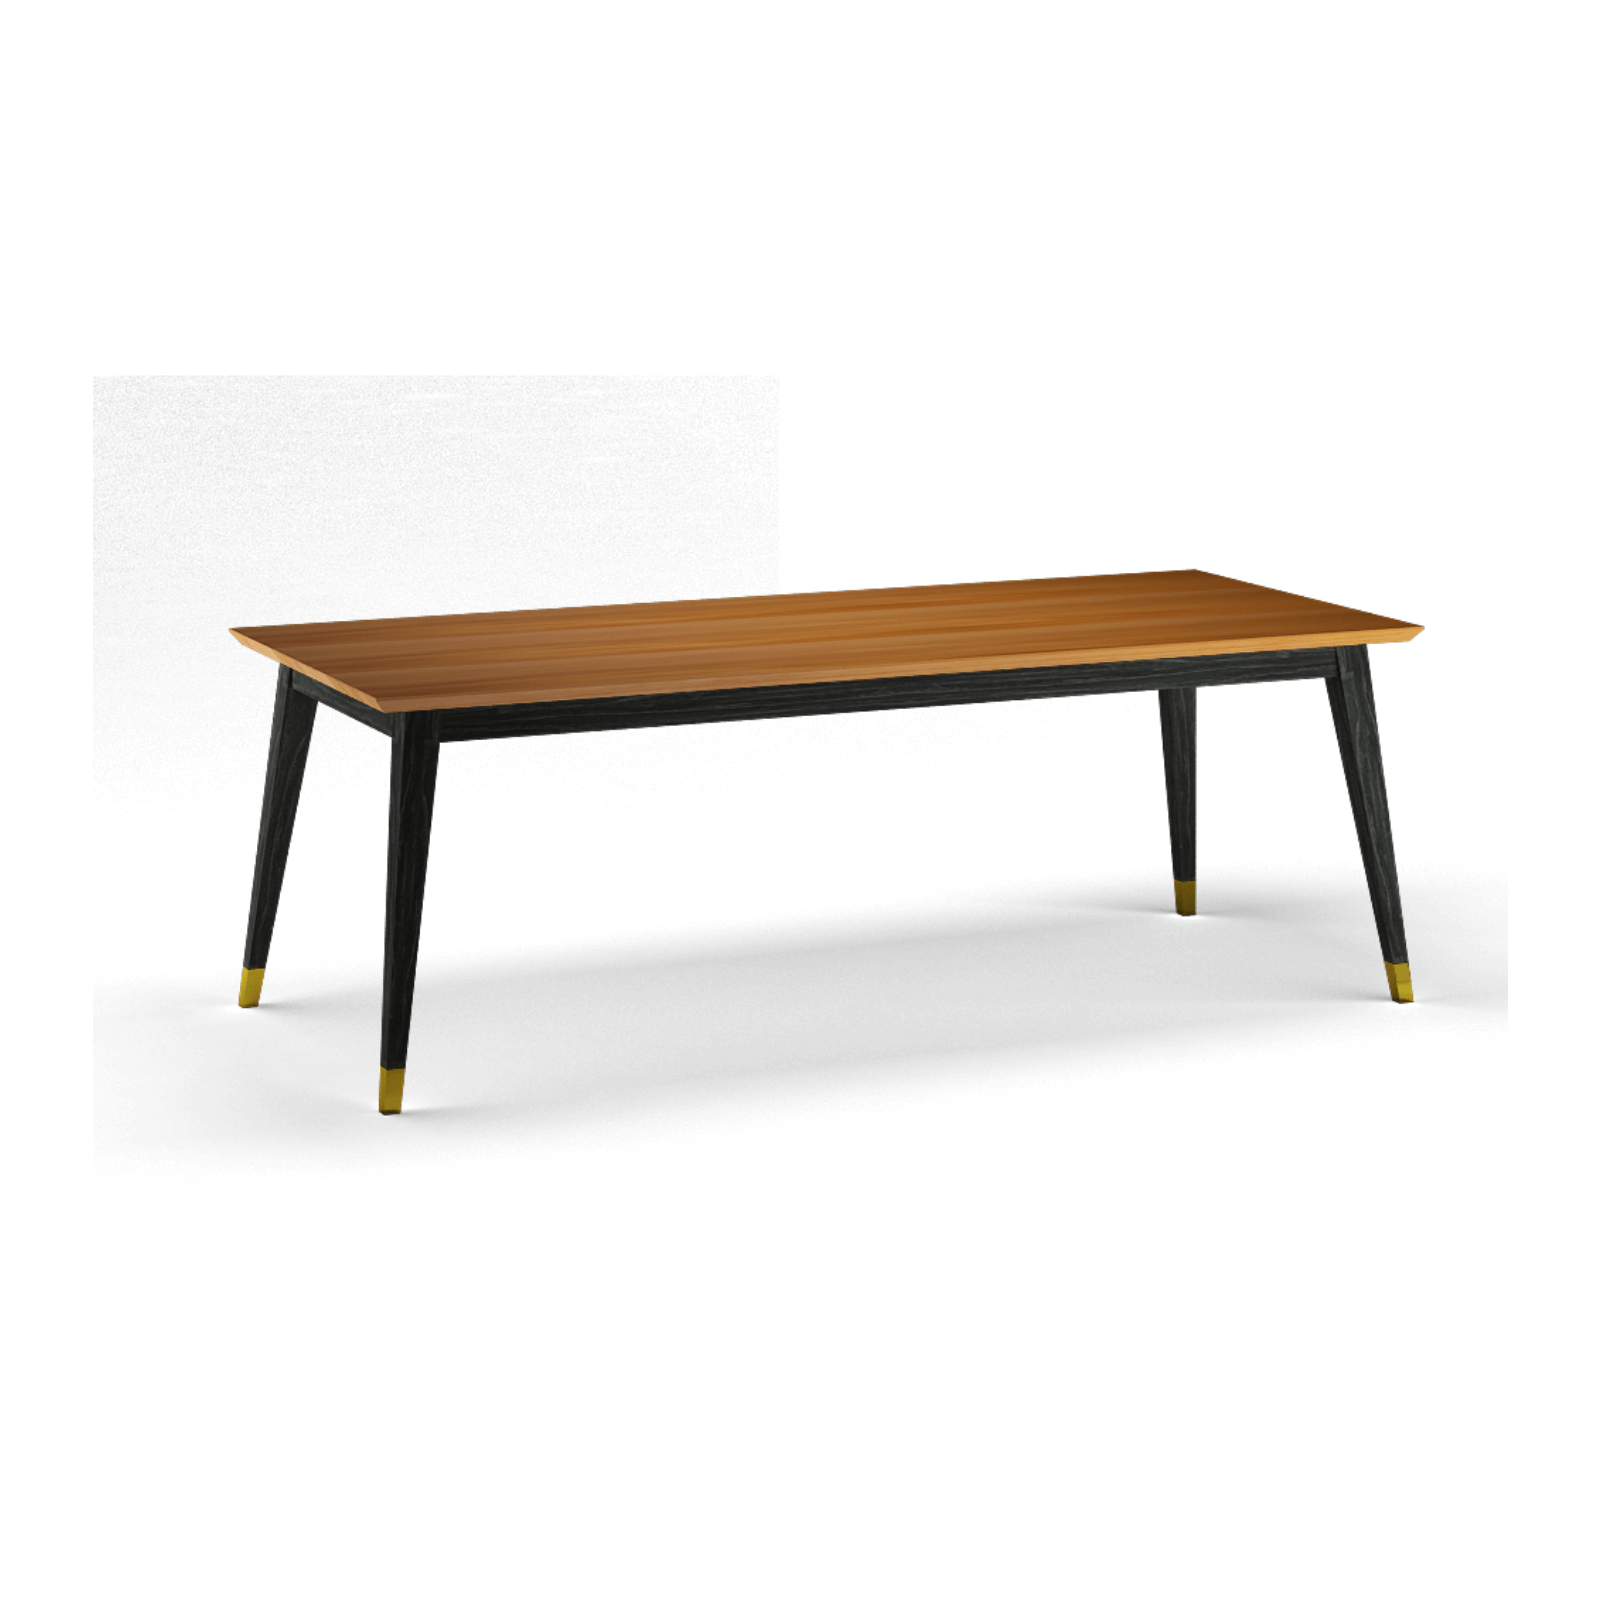 Two Design Lovers Reddie furniture vinny dining table angle